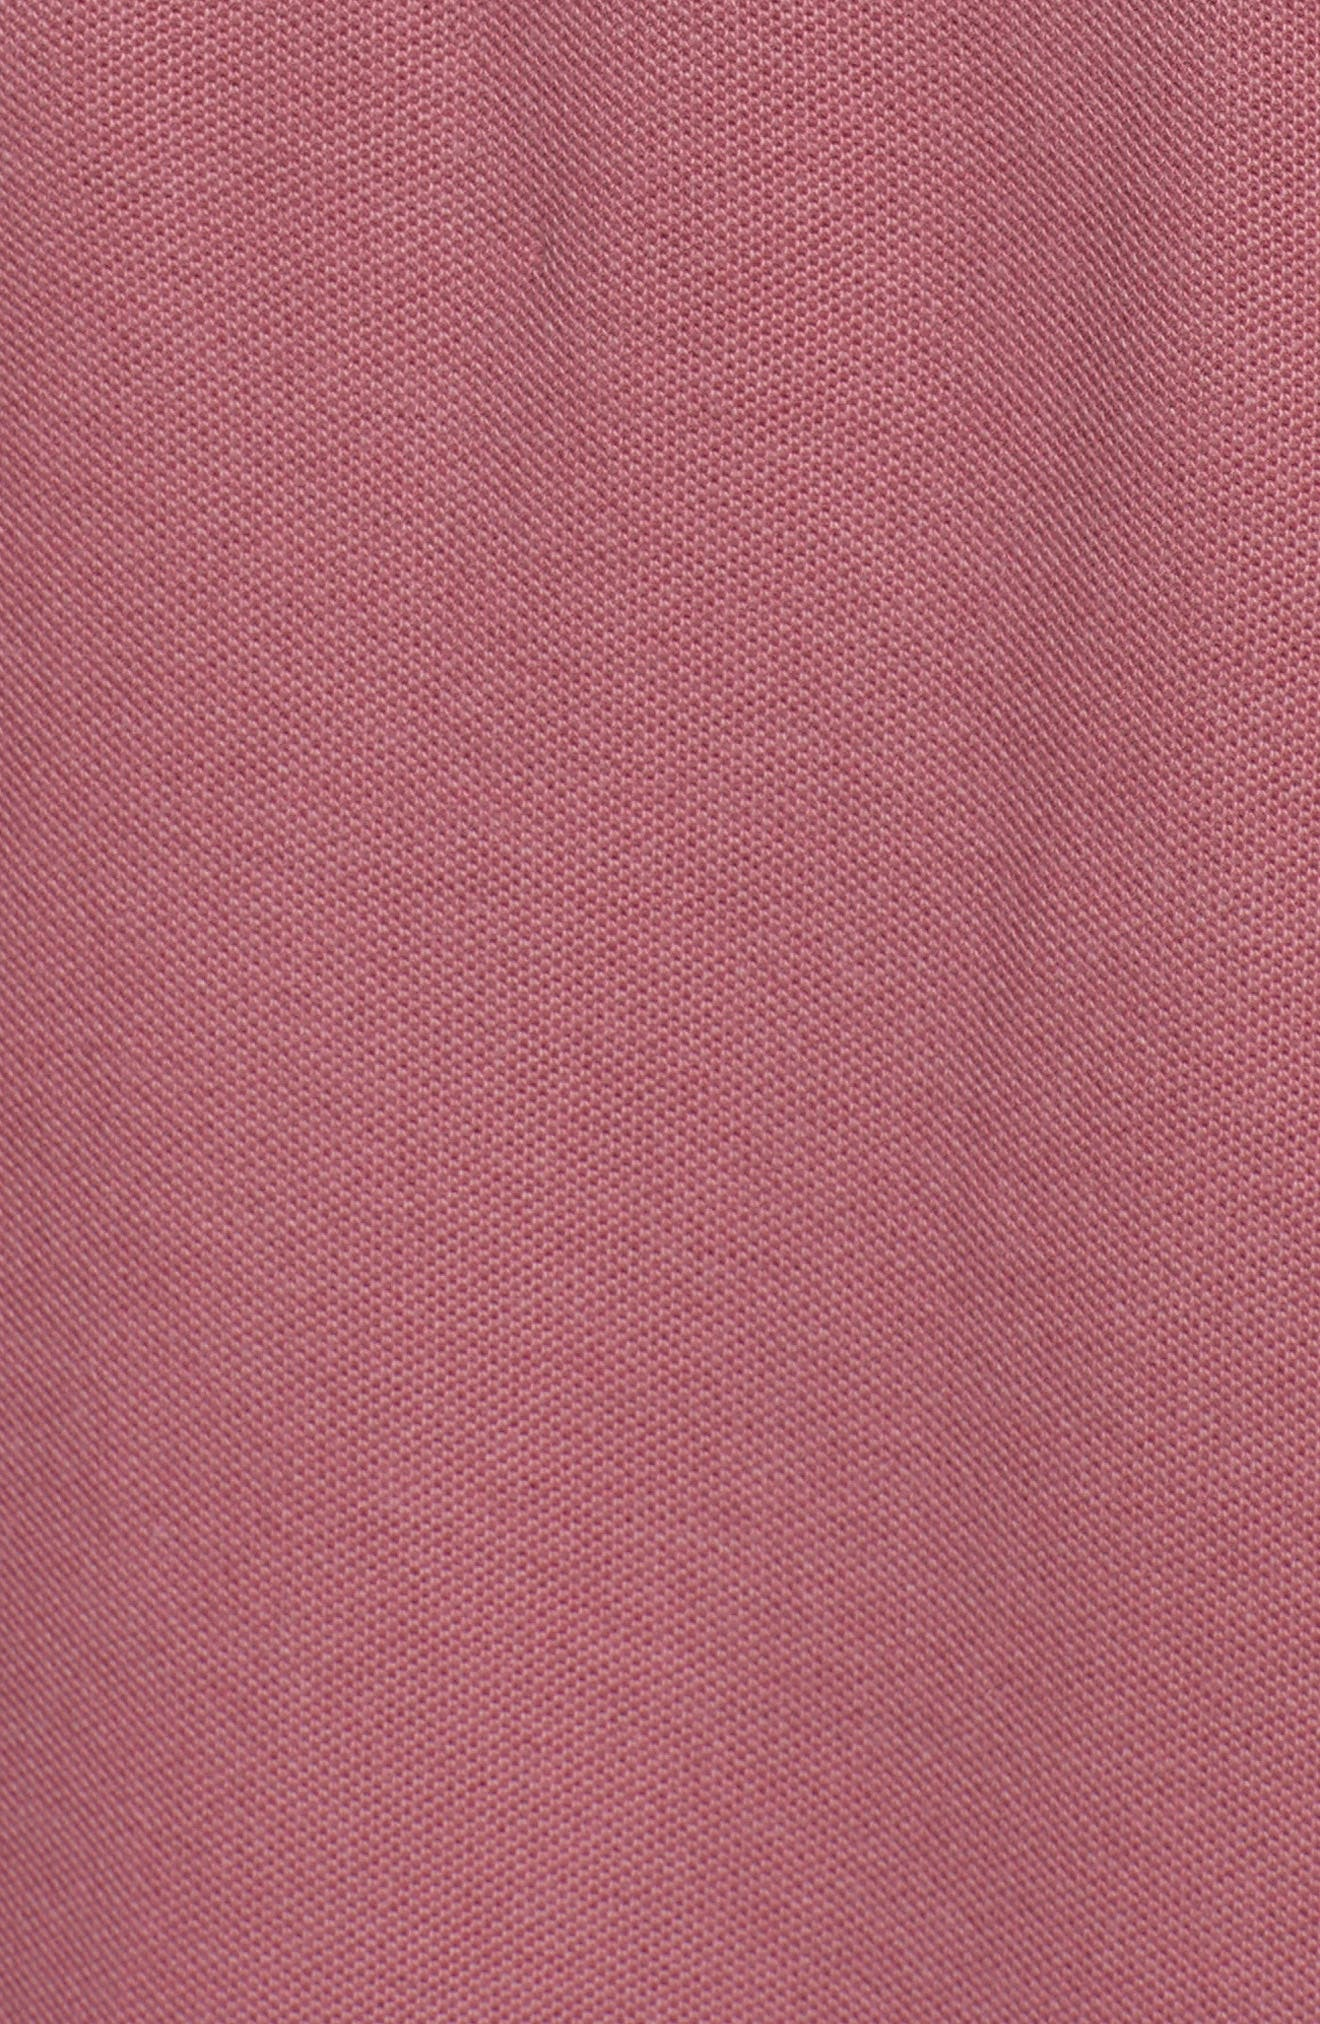 Piqué Hooded Dress,                             Alternate thumbnail 5, color,                             Nantucket Red